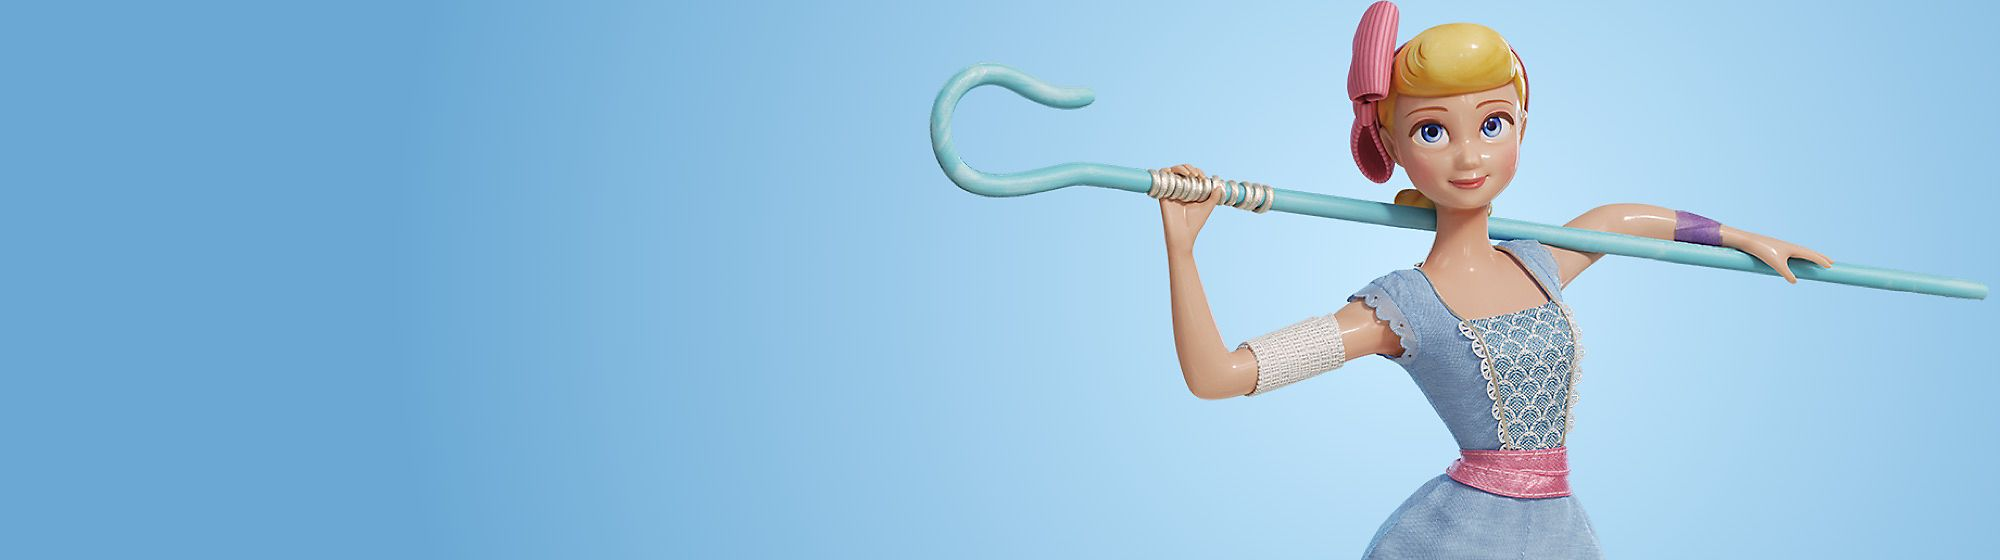 Bo Peep Get ready to join the adventure with our Bo Peep toys, costumes, accessories and more